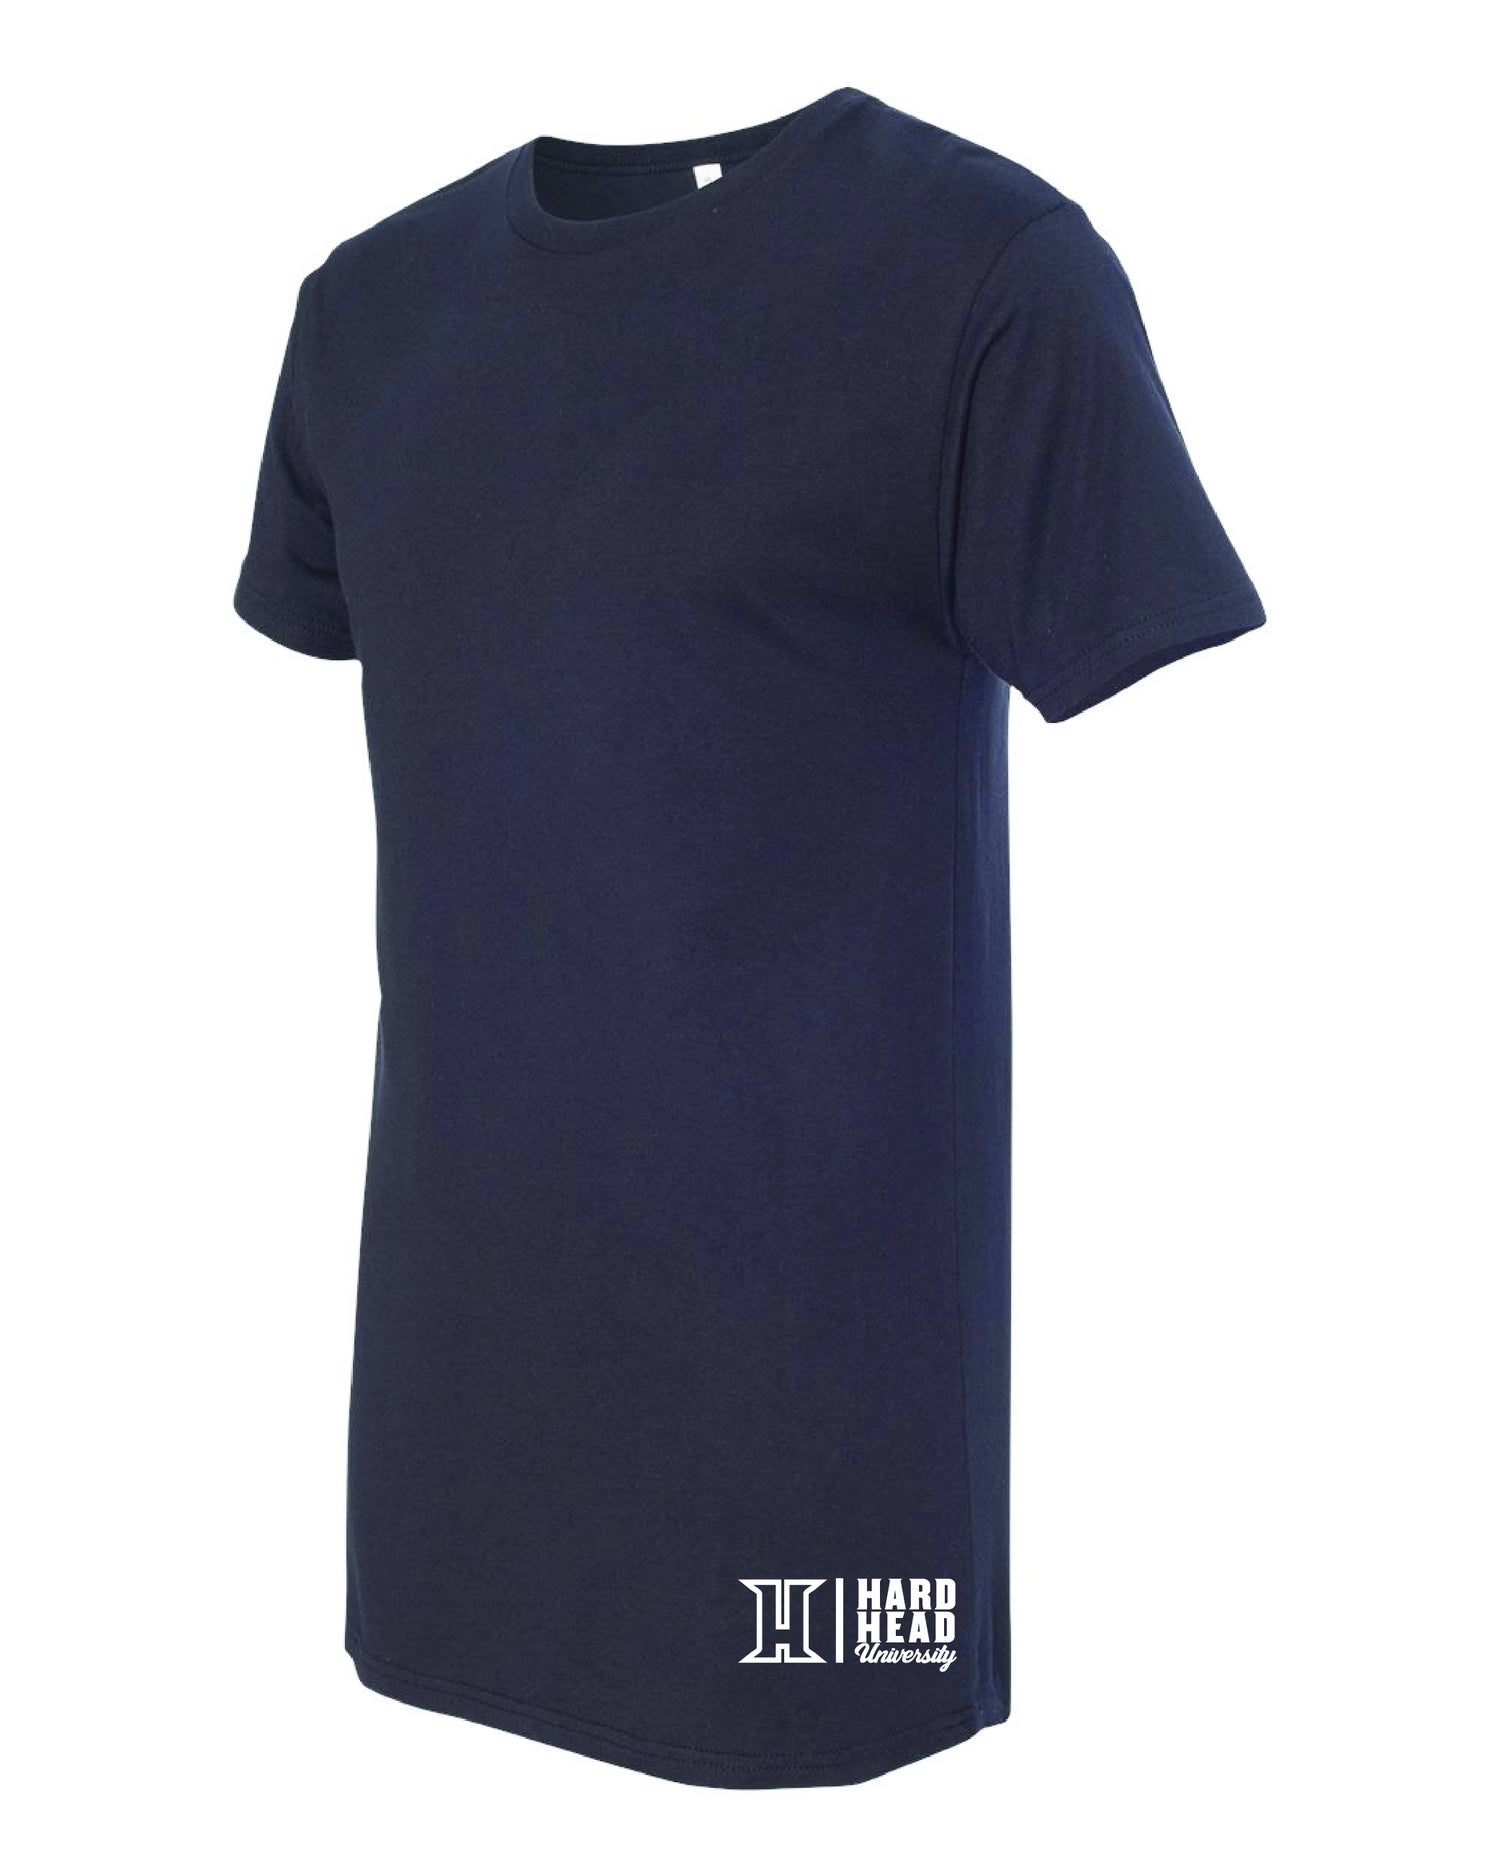 Image of HHU - Scoop tee Black